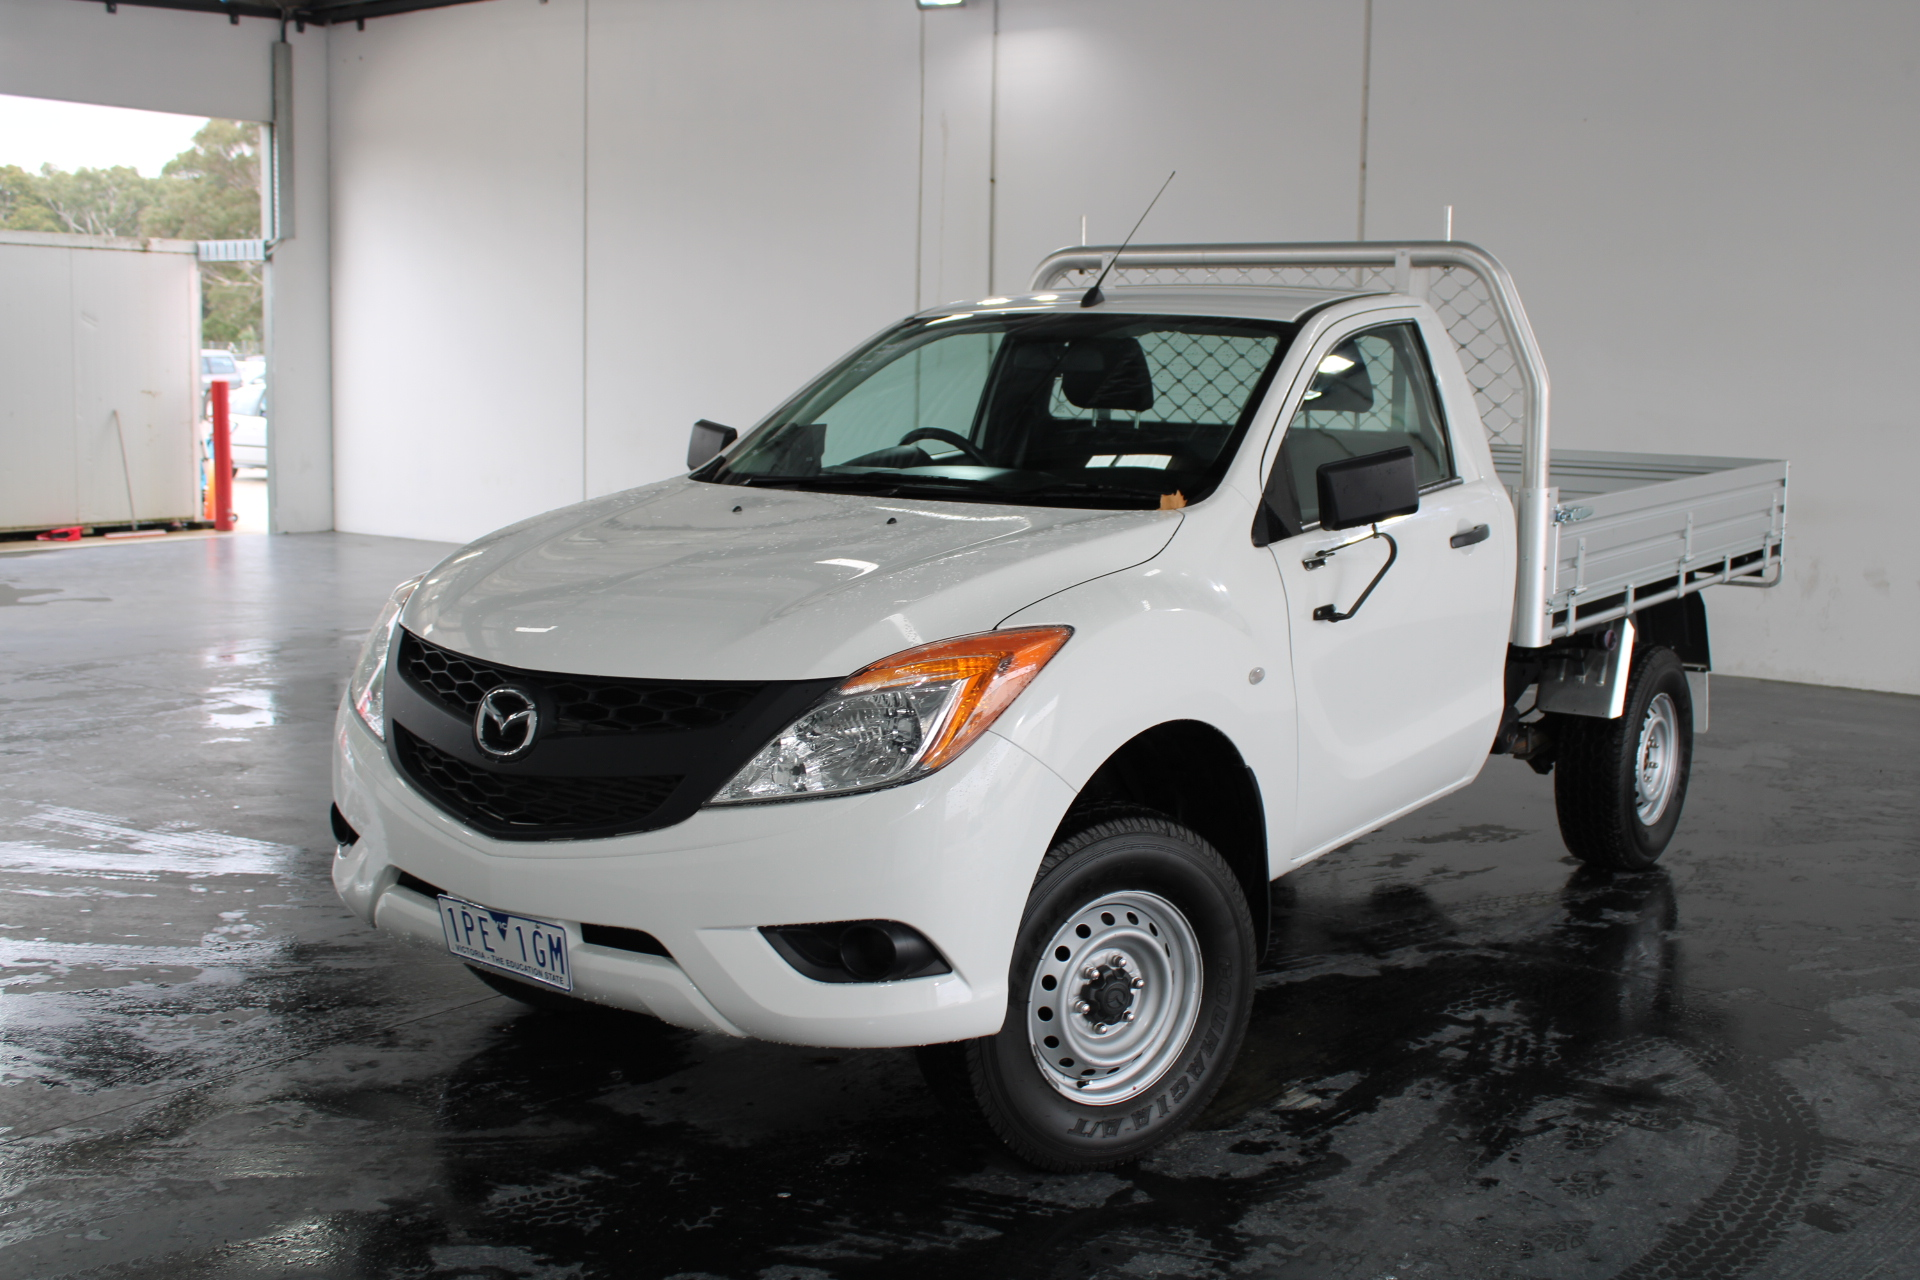 2013 Mazda BT-50 4X2 XT Turbo Diesel Automatic Cab Chassis